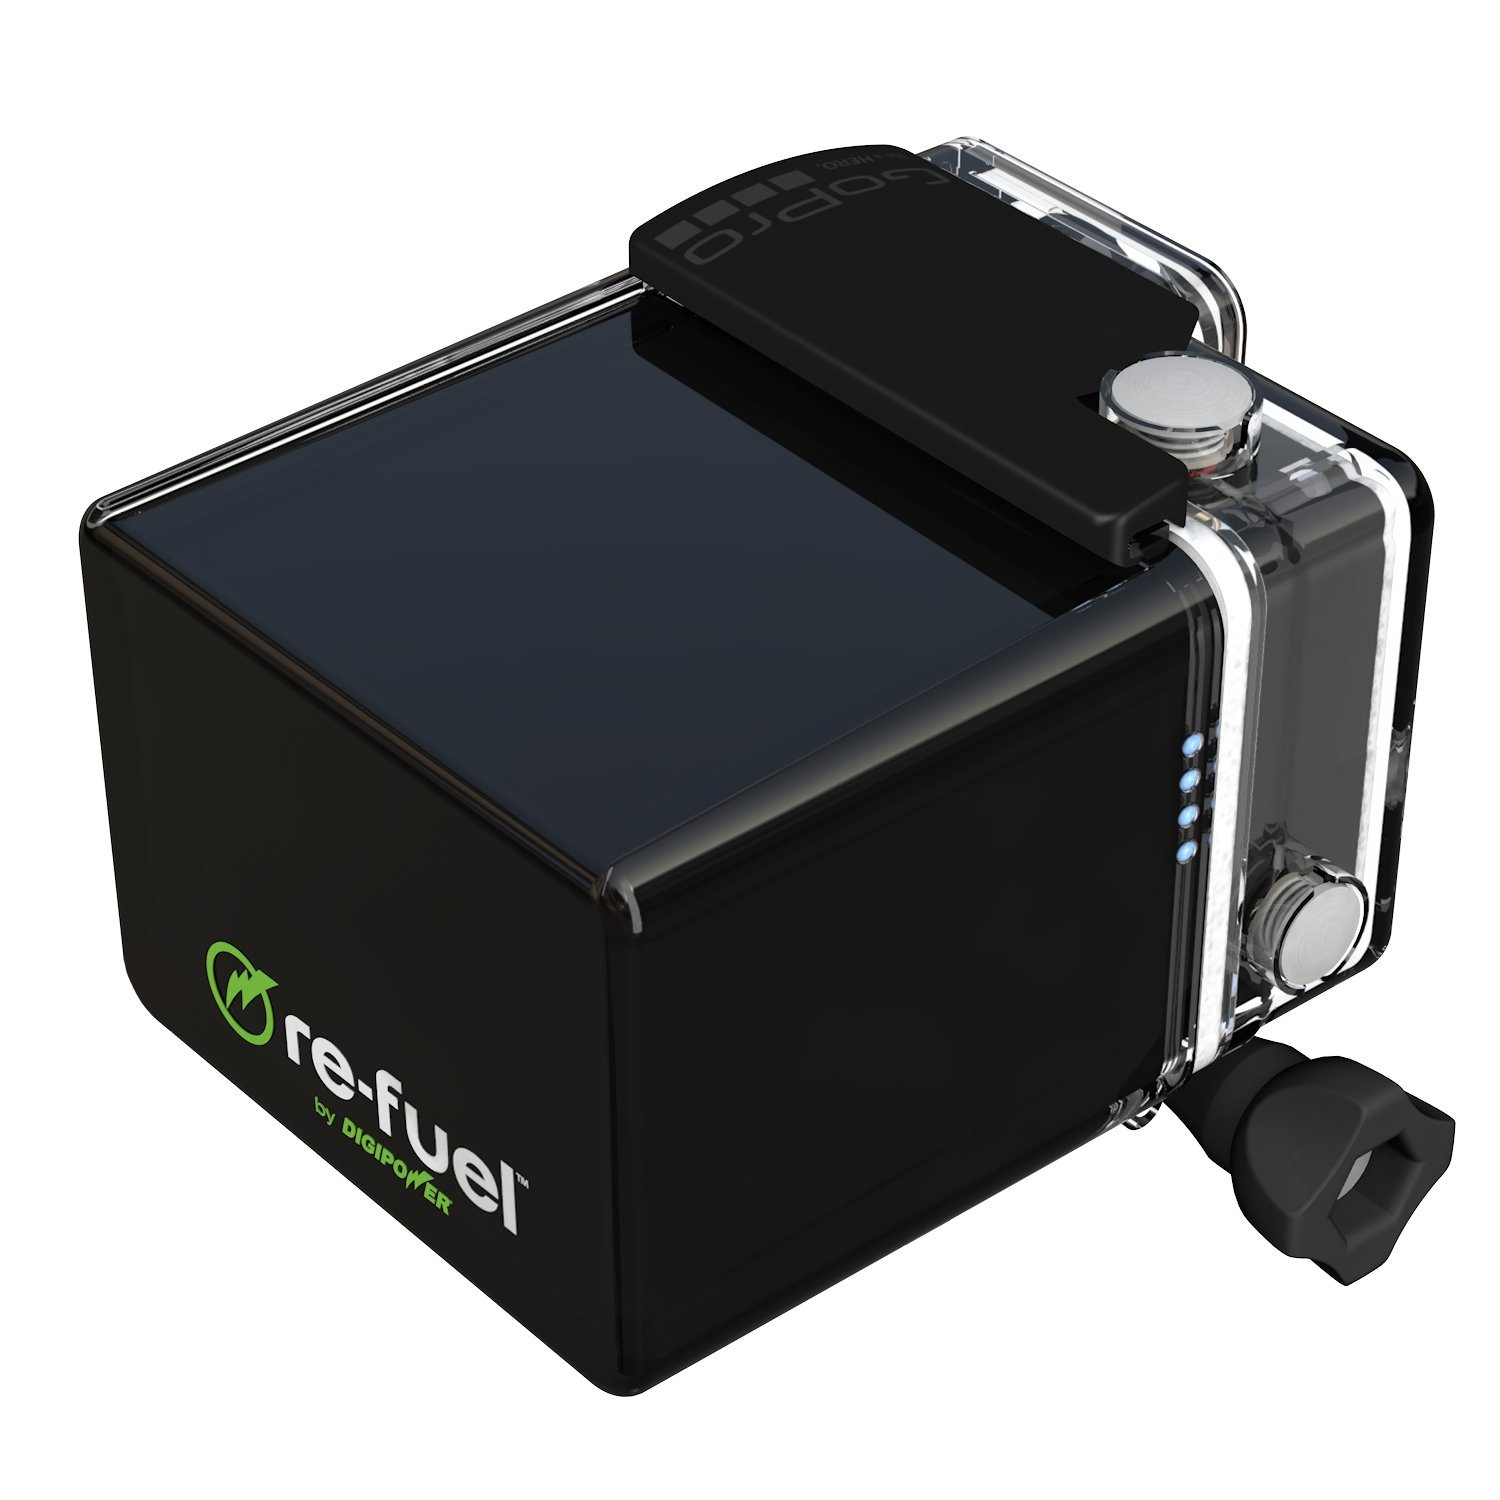 Re-Fuel 9600mAh 24-Hour Action Battery Pack for GoPro HERO3, HERO3+, and HERO4 Cameras by DigiPower